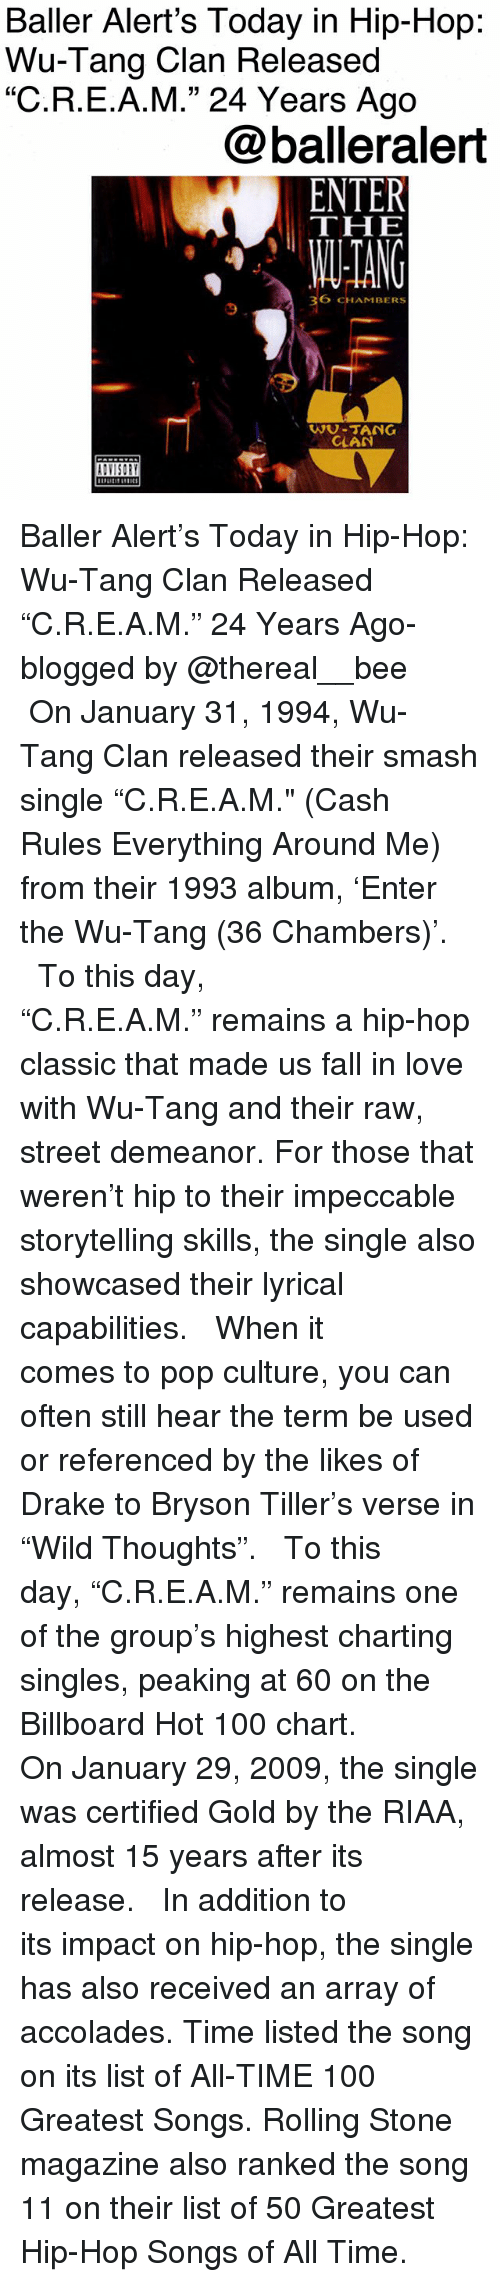 "Anaconda, Baller Alert, and Billboard: Baller Alert's Today in Hip-Hop:  Wu-Tang Clan Released  ""C.R.E.A.M."" 24 Years Ago  @balleralert  THE  ANG  36 CHAMBERS  9  WU-TANG  CLAN Baller Alert's Today in Hip-Hop: Wu-Tang Clan Released ""C.R.E.A.M."" 24 Years Ago-blogged by @thereal__bee ⠀⠀⠀⠀⠀⠀⠀ ⠀⠀⠀⠀ On January 31, 1994, Wu-Tang Clan released their smash single ""C.R.E.A.M."" (Cash Rules Everything Around Me) from their 1993 album, 'Enter the Wu-Tang (36 Chambers)'. ⠀⠀⠀⠀⠀⠀⠀ ⠀⠀⠀⠀ To this day, ""C.R.E.A.M."" remains a hip-hop classic that made us fall in love with Wu-Tang and their raw, street demeanor. For those that weren't hip to their impeccable storytelling skills, the single also showcased their lyrical capabilities. ⠀⠀⠀⠀⠀⠀⠀ ⠀⠀⠀⠀ When it comes to pop culture, you can often still hear the term be used or referenced by the likes of Drake to Bryson Tiller's verse in ""Wild Thoughts"". ⠀⠀⠀⠀⠀⠀⠀ ⠀⠀⠀⠀ To this day, ""C.R.E.A.M."" remains one of the group's highest charting singles, peaking at 60 on the Billboard Hot 100 chart. ⠀⠀⠀⠀⠀⠀⠀ ⠀⠀⠀⠀ On January 29, 2009, the single was certified Gold by the RIAA, almost 15 years after its release. ⠀⠀⠀⠀⠀⠀⠀ ⠀⠀⠀⠀ In addition to its impact on hip-hop, the single has also received an array of accolades. Time listed the song on its list of All-TIME 100 Greatest Songs. Rolling Stone magazine also ranked the song 11 on their list of 50 Greatest Hip-Hop Songs of All Time."